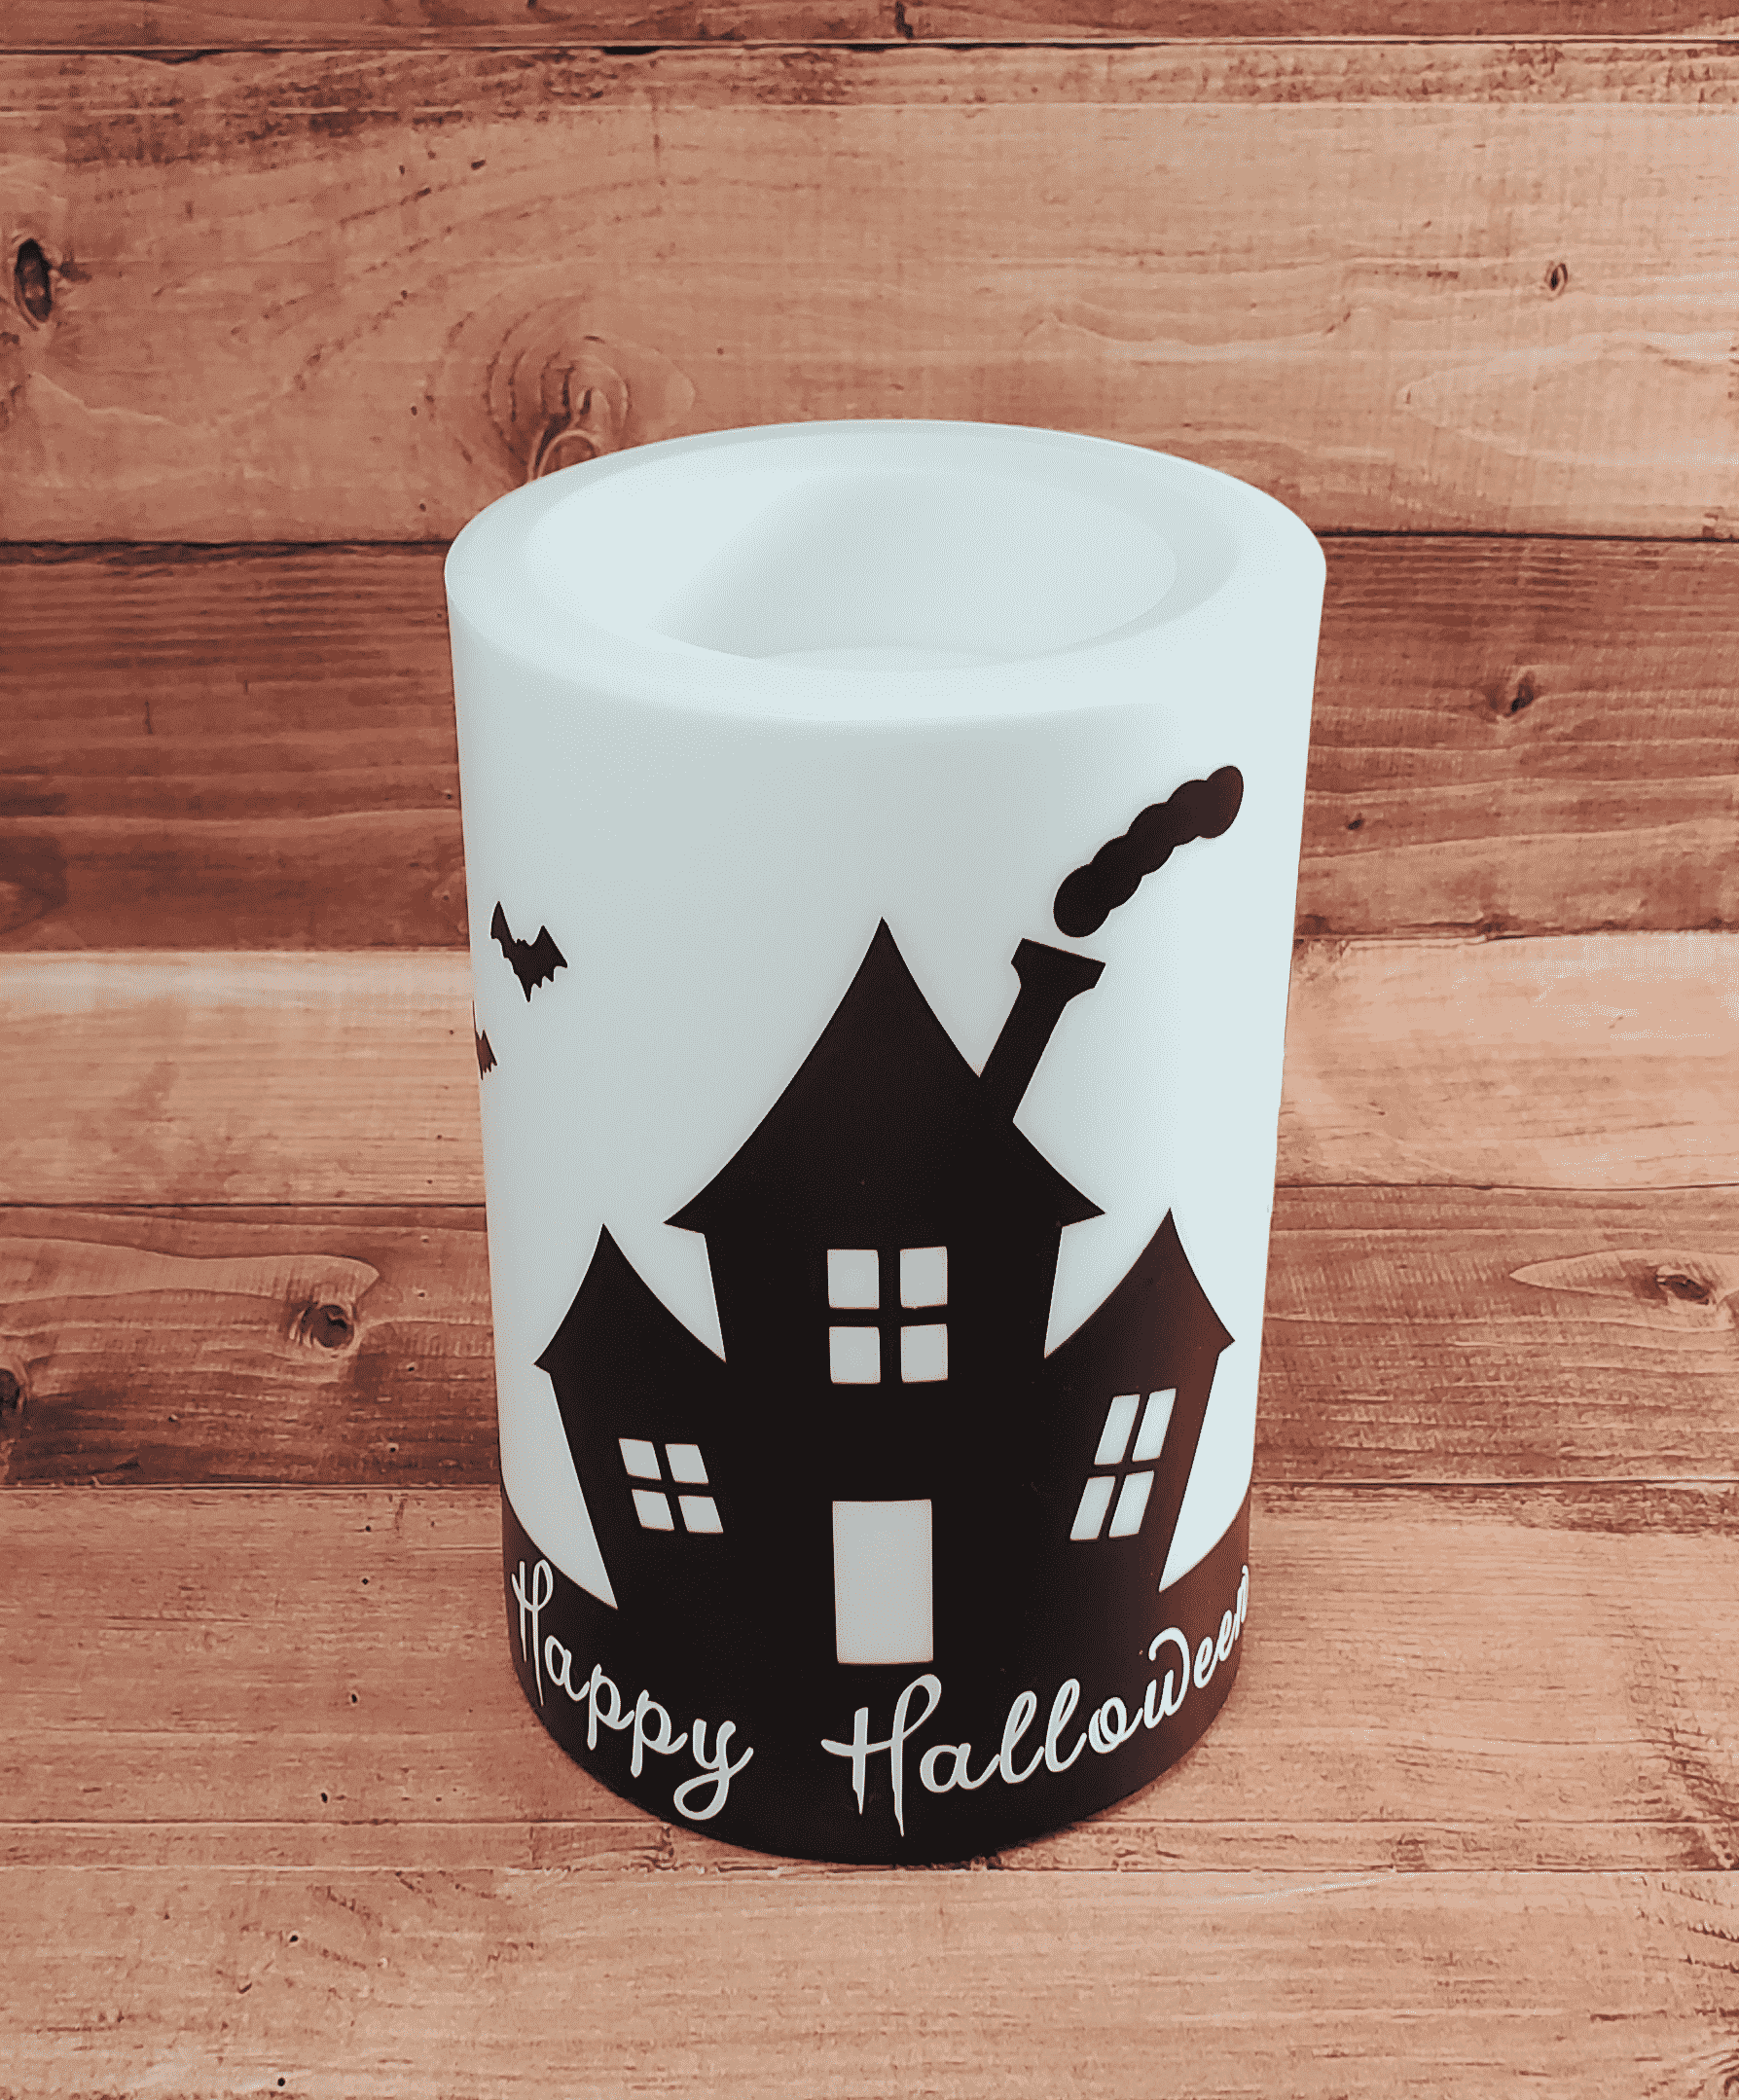 Final Happy Halloween Candle